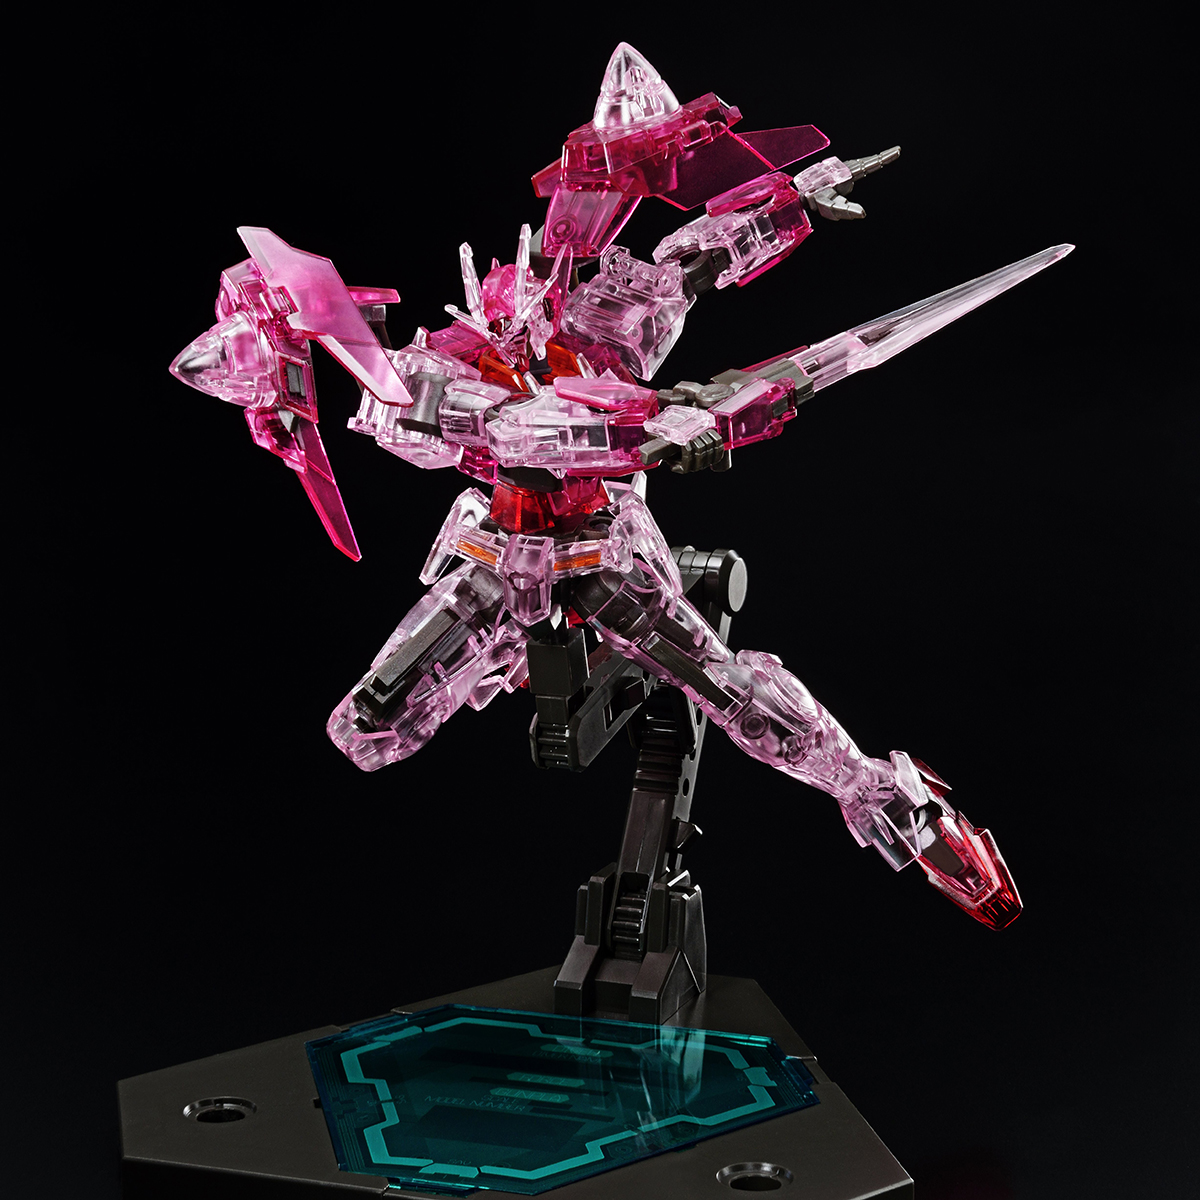 HG 1/144 THE GUNDAM BASE LIMITED GUNDAM 00 DIVER[TRANS-AM CLEAR][Sep 2020 Delivery]